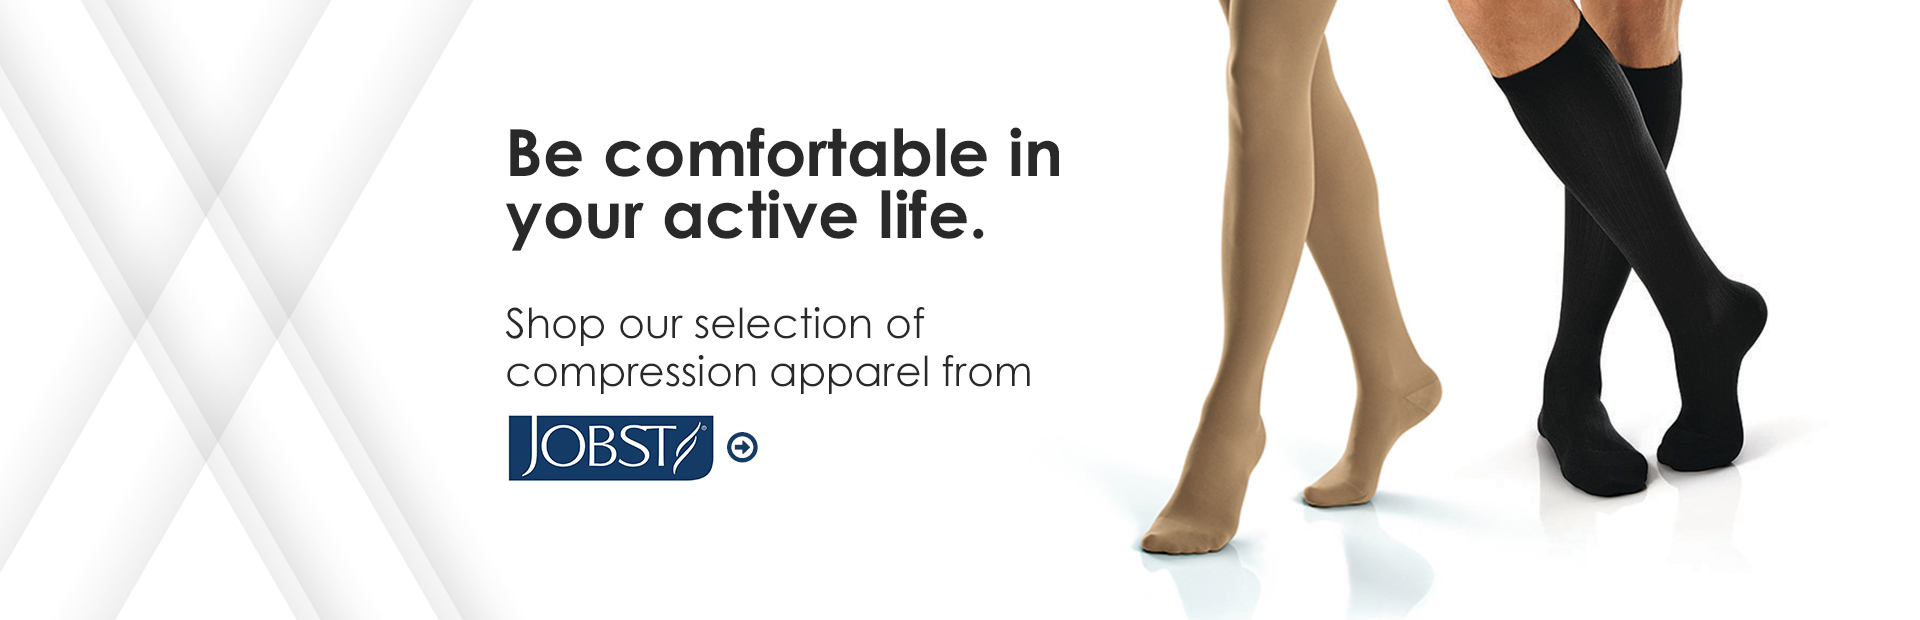 Shop our selection of compression apparel from JOBST.